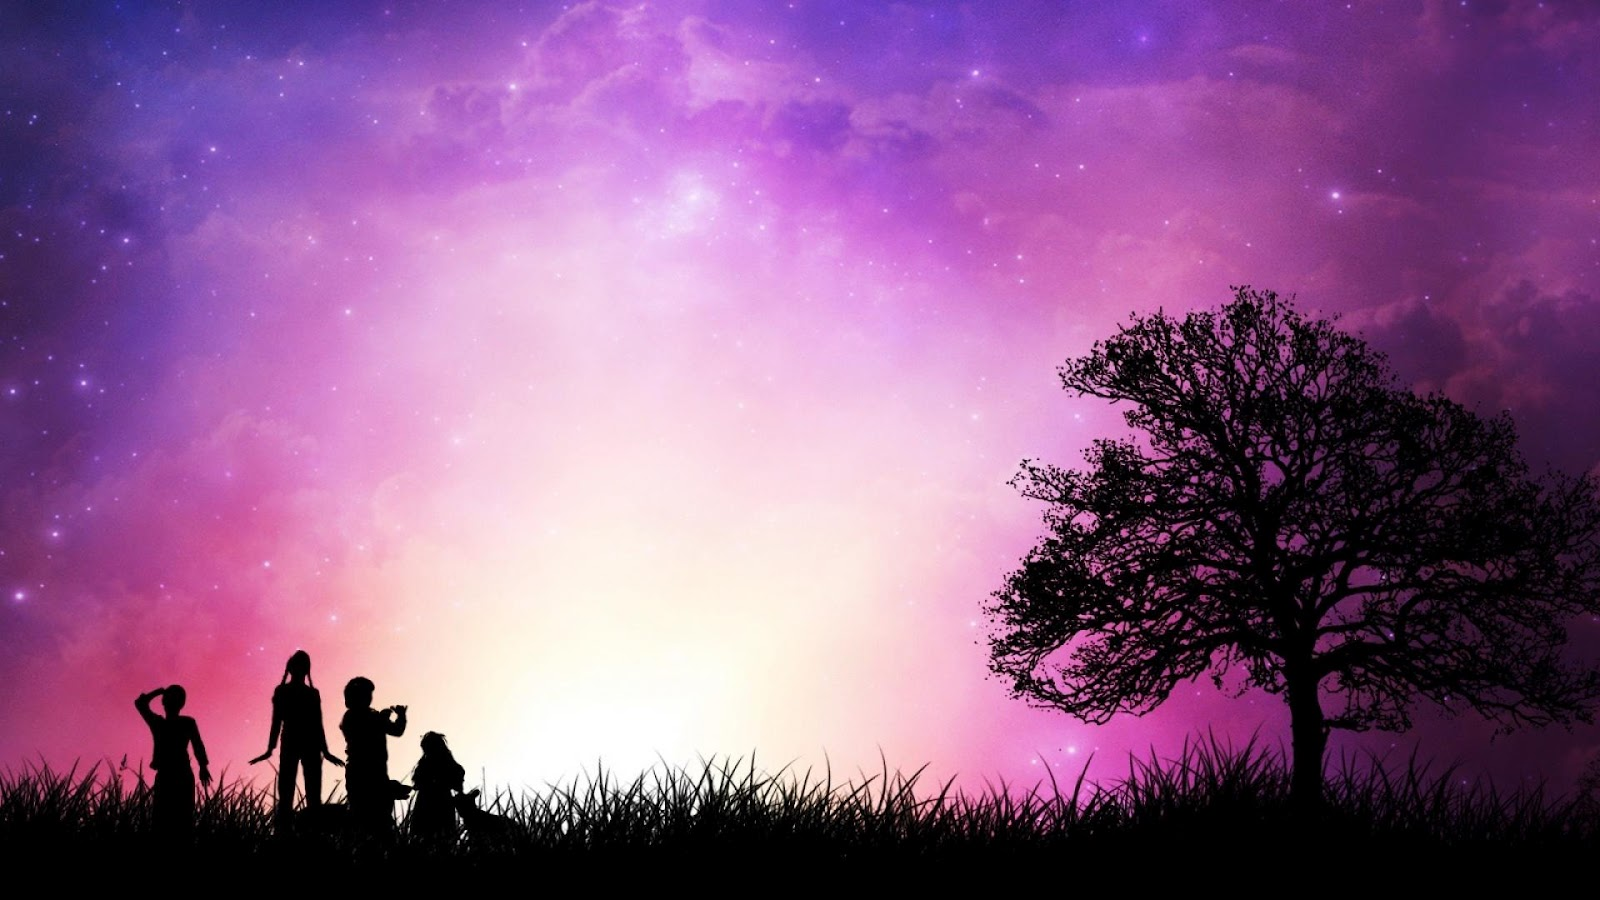 Love Wallpapers With Hd : Romantic Wallpapers HD Pictures HD Wallpapers ...